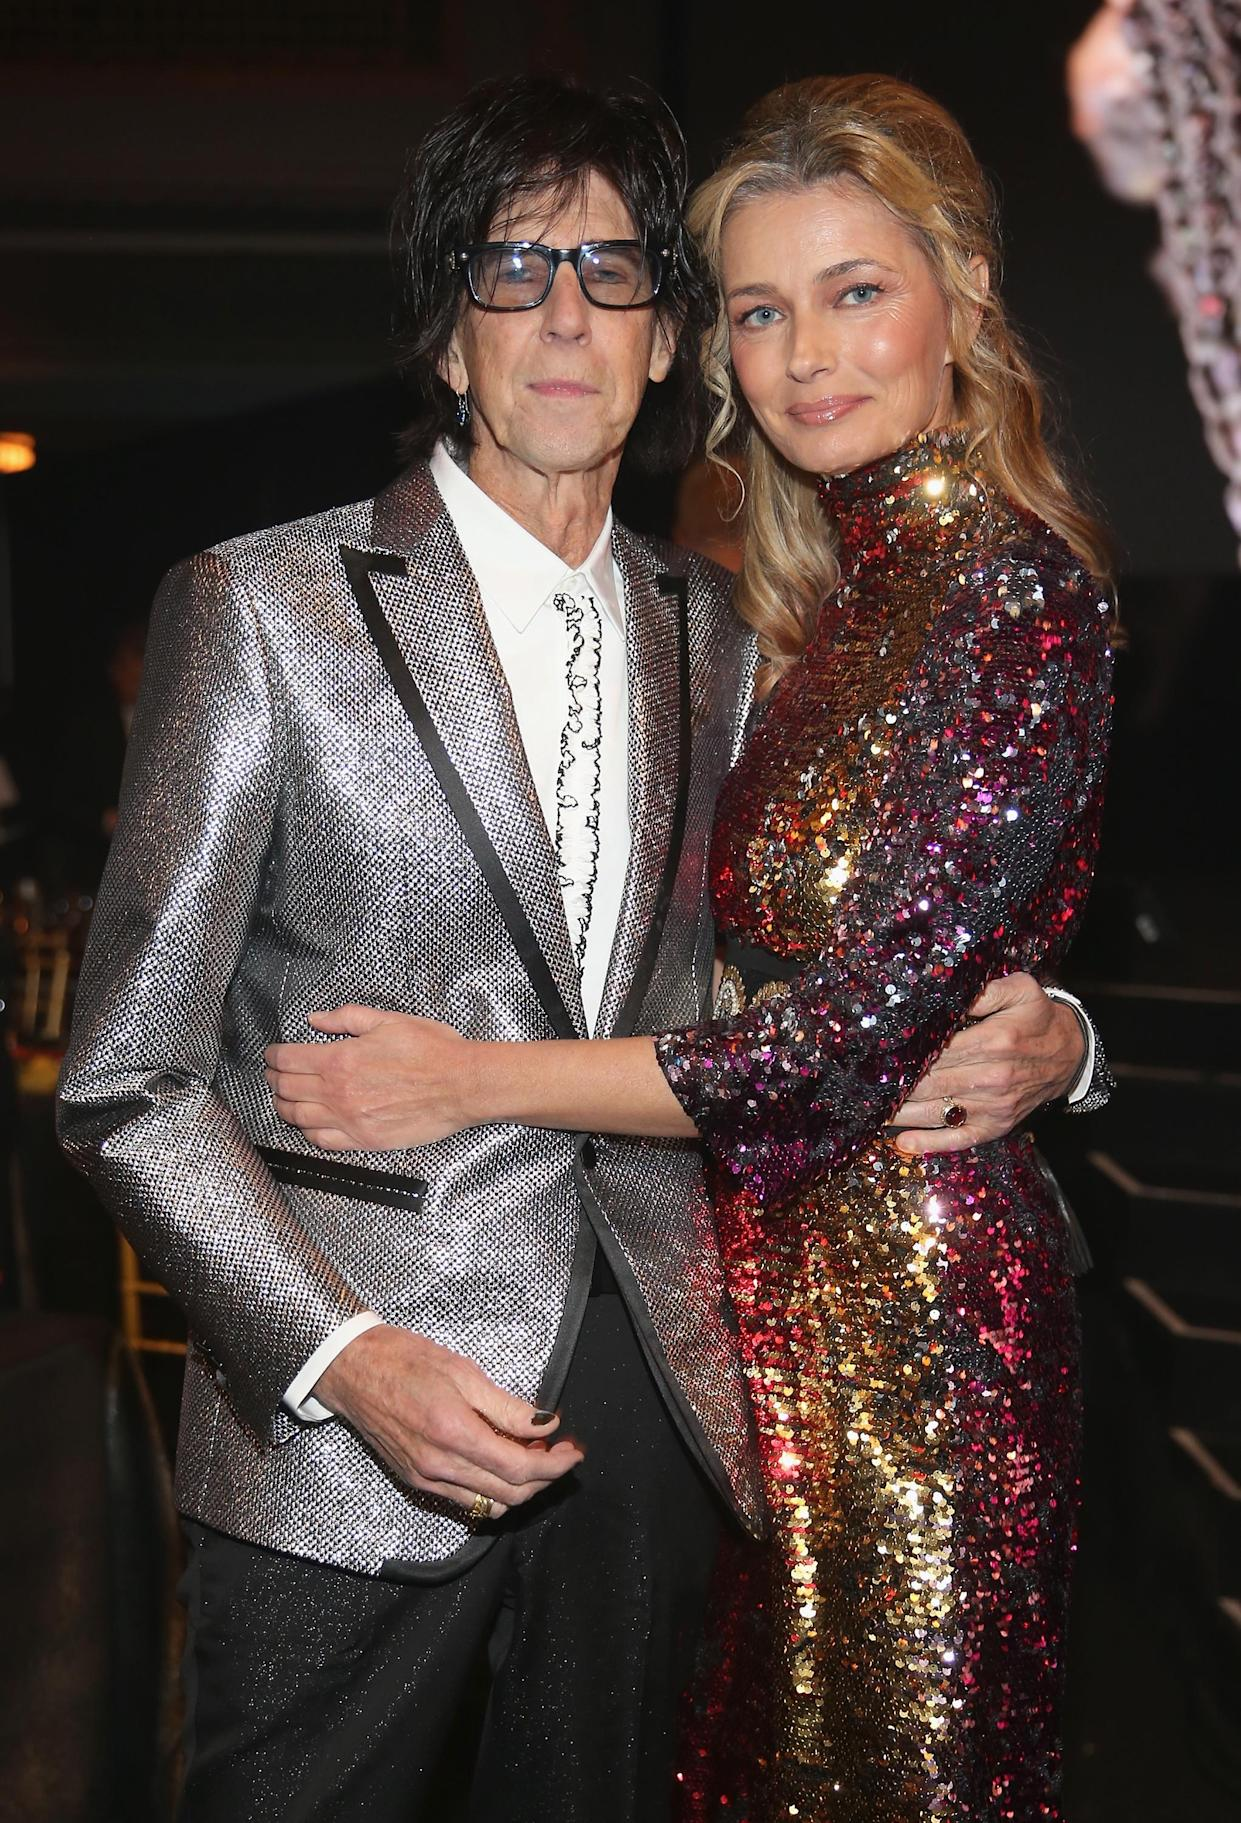 Ric Ocasek and Paulina Porizkova at the 33rd Annual Rock & Roll Hall of Fame Induction Ceremony on April 14, 2018. (Photo: Kevin Kane/Getty Images For the Rock and Roll Hall of Fame)